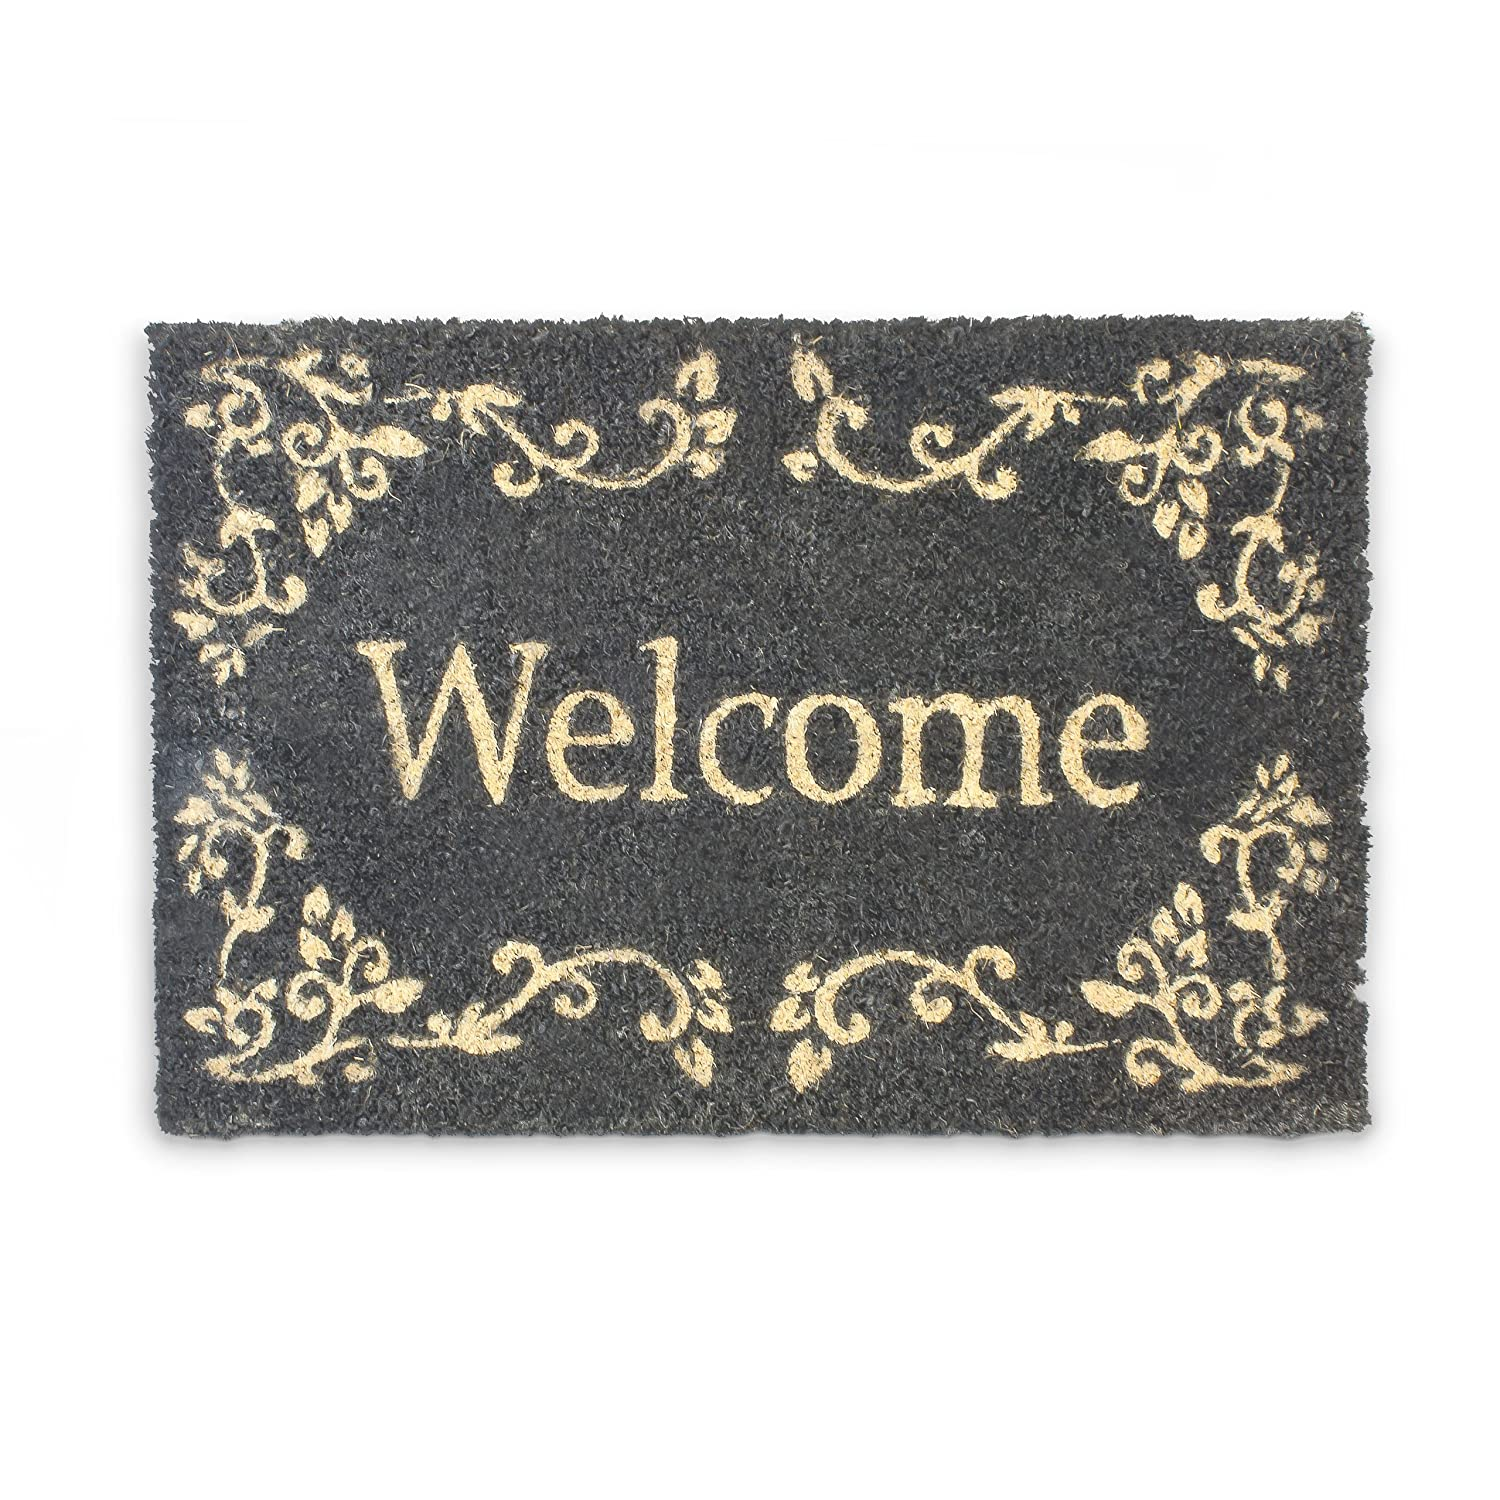 Relaxdays Coconut Fibre WELCOME Doormat 40 x 60 cm Coir Welcome Mat with No-Slip Rubber PVC Underside, Black 10016789